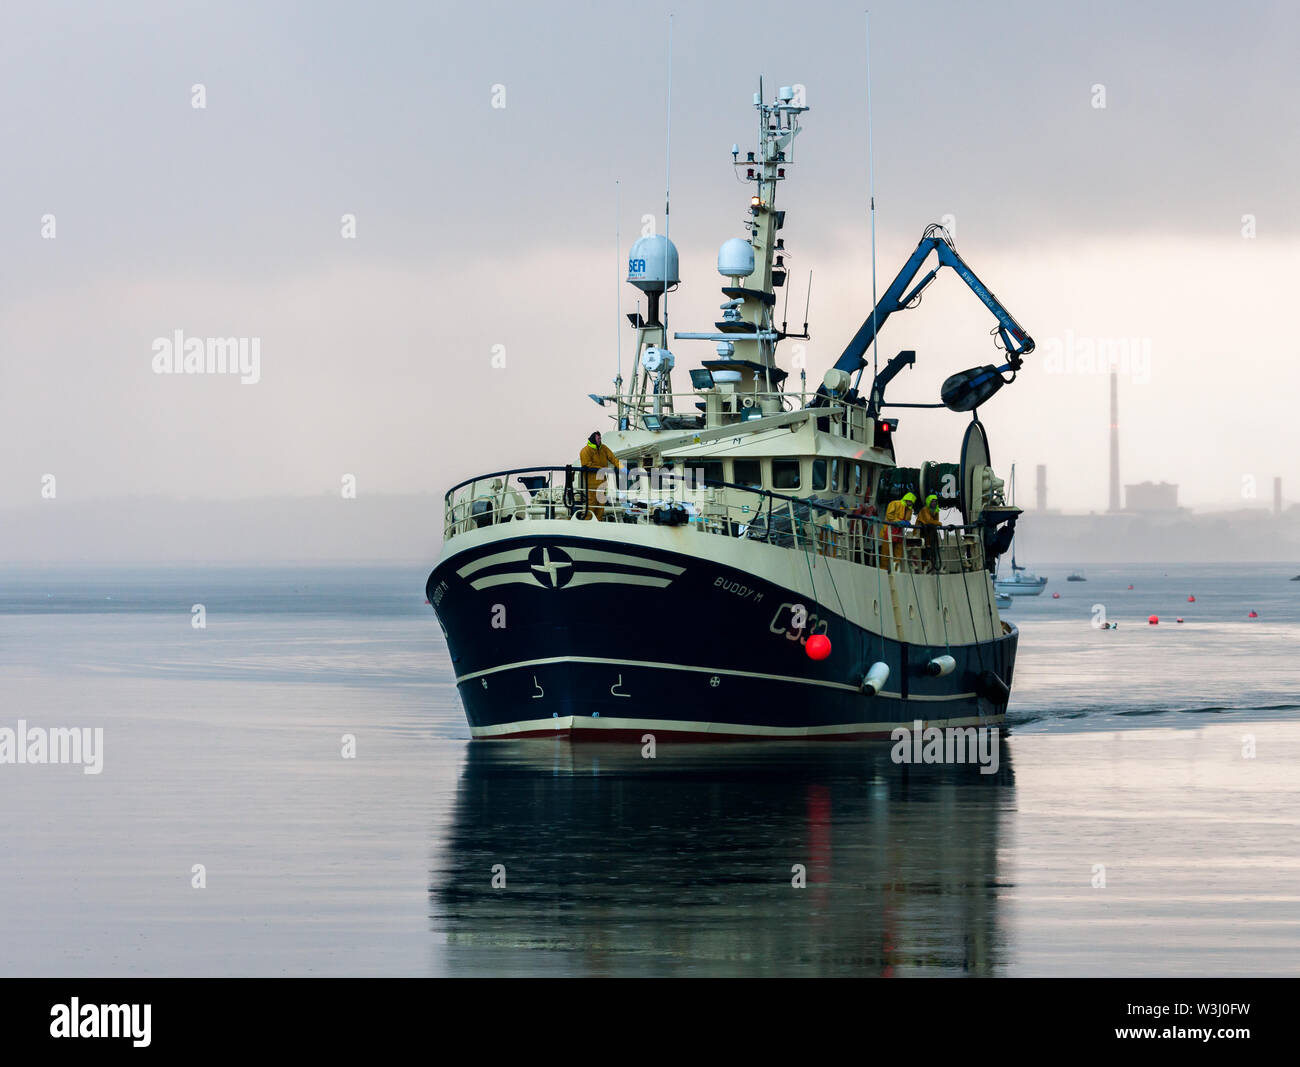 Crosshaven, Cork, Ireland. 16th July, 2019. Trawler Buddy M returns on an overcast morning from the Celtic Sea with a catch of Haddock and Whiting to Crosshaven, Co. Cork, Ireland. Credit: David Creedon/Alamy Live News - Stock Image